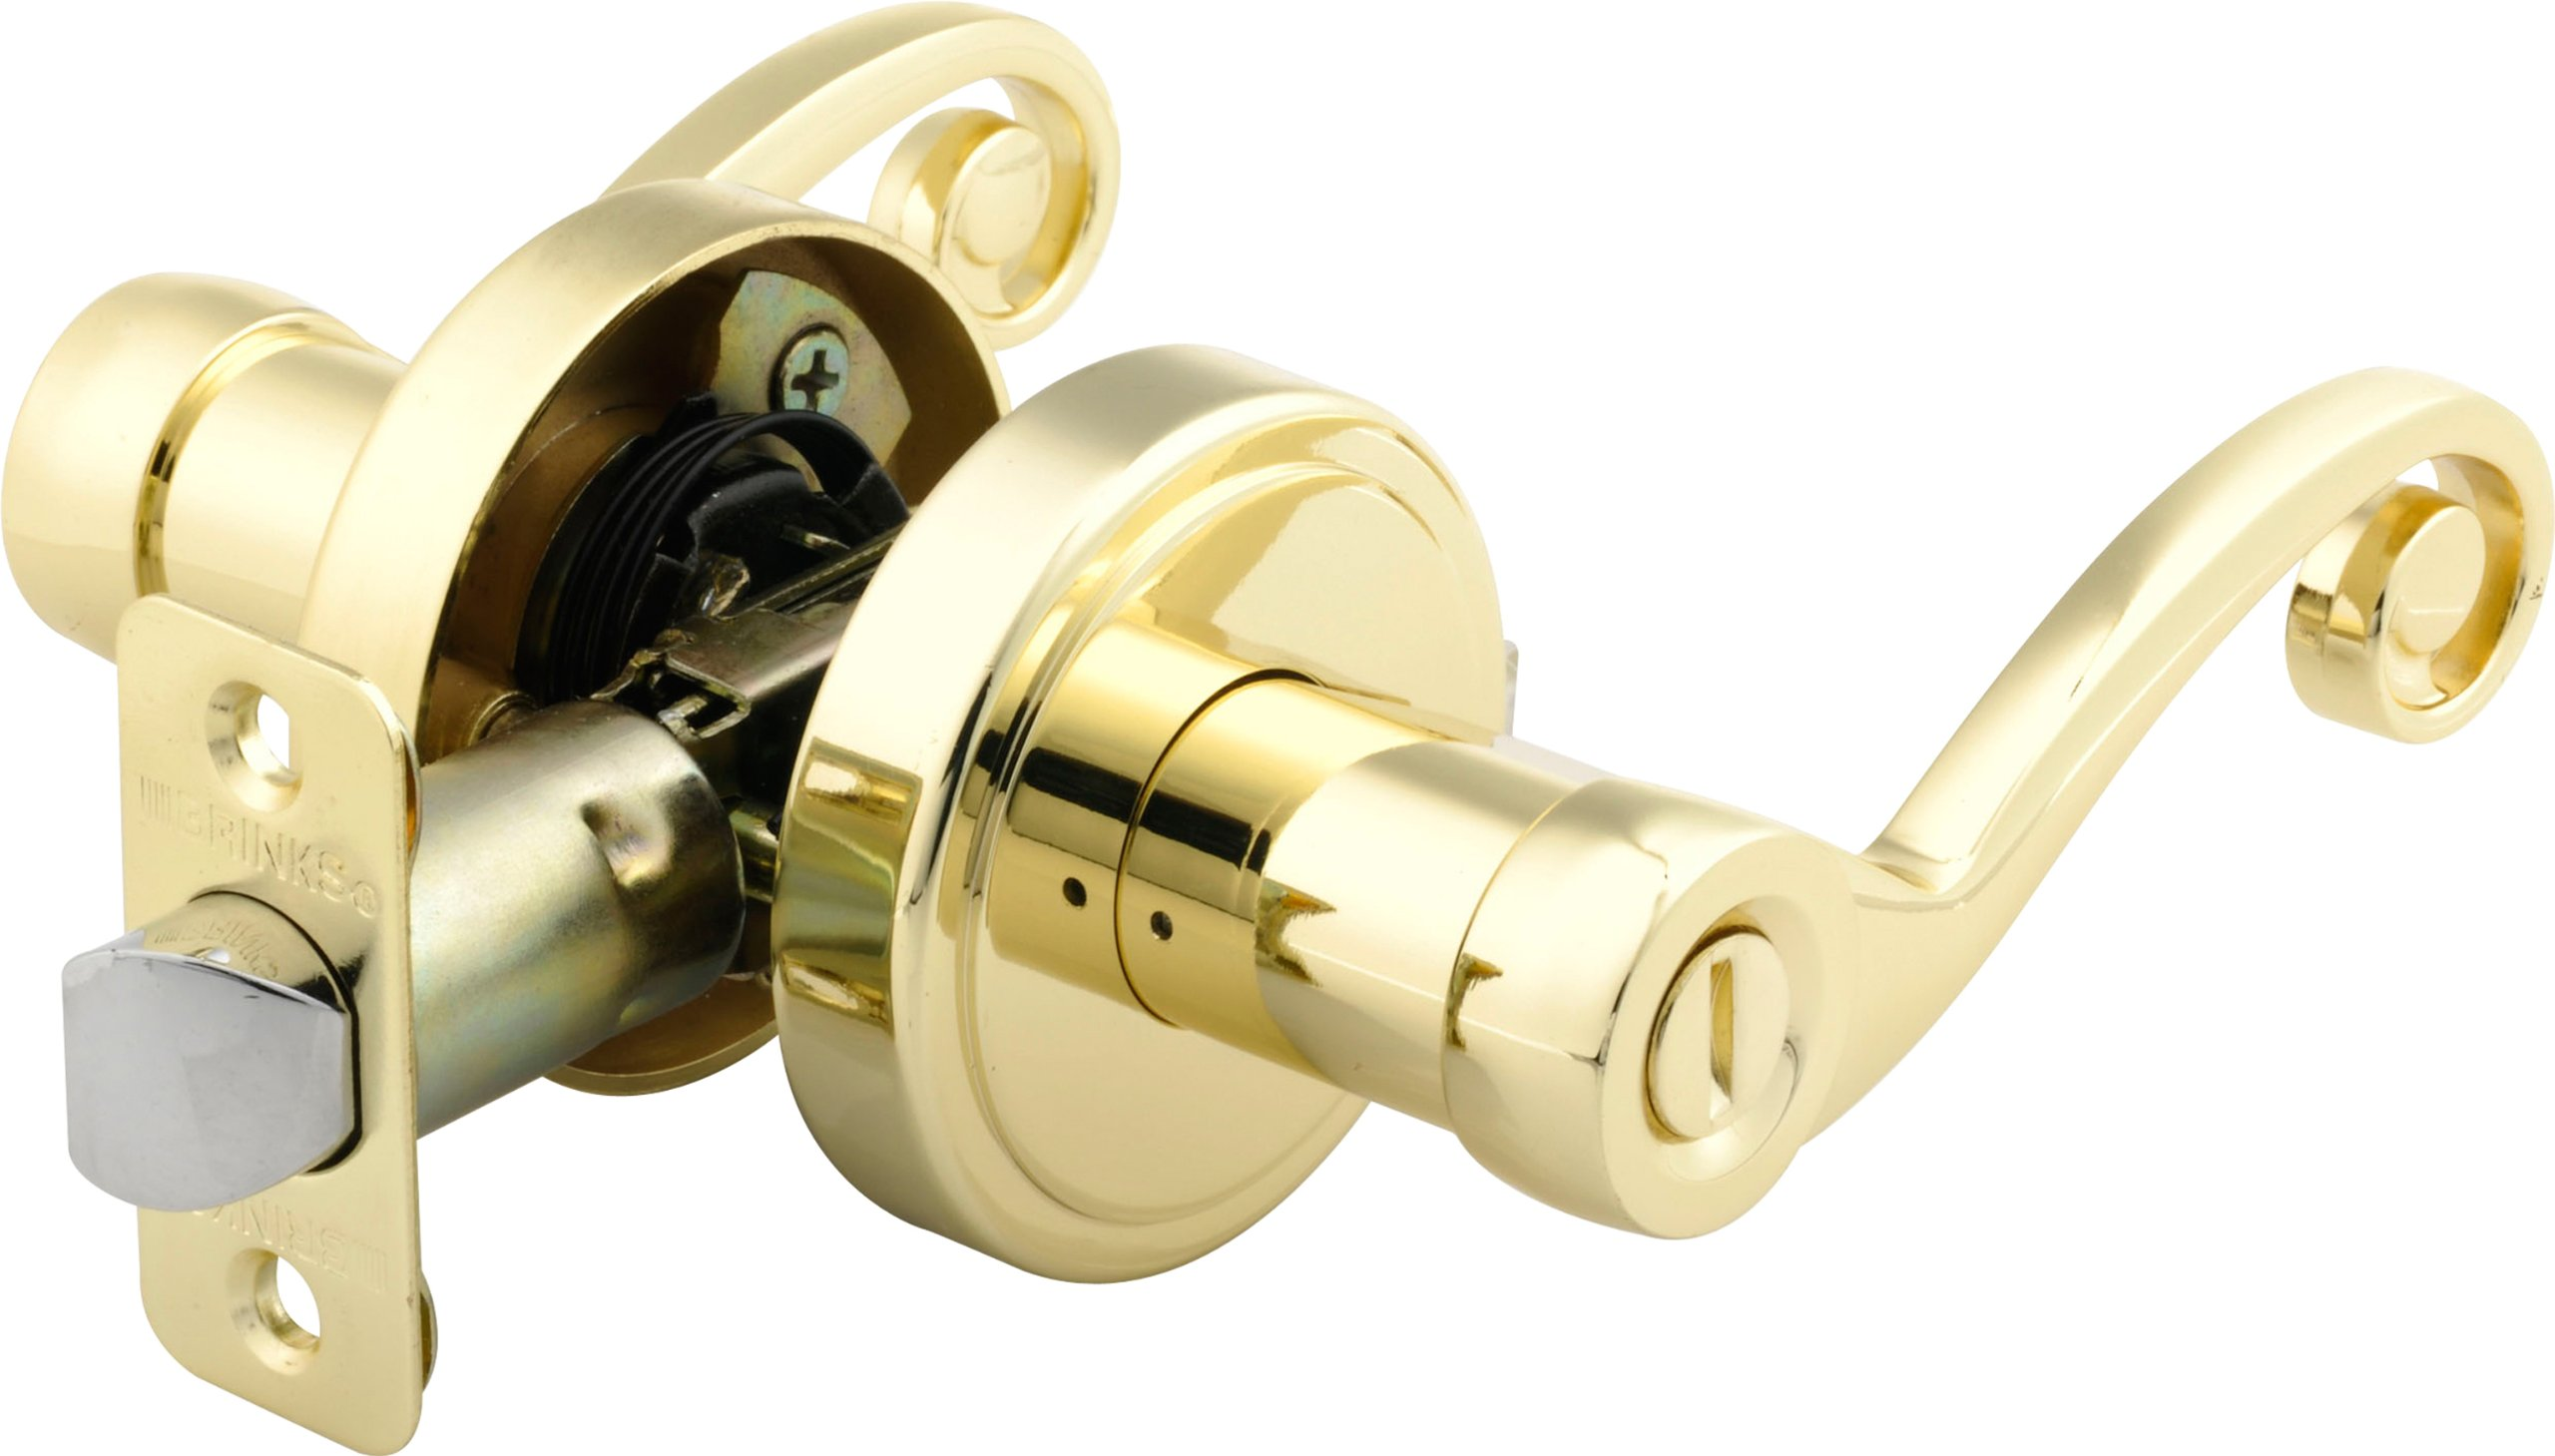 Brinks 2740-105 Scroll Style Lever Door Knob with Privacy Key for Bedroom and Bath, Polished Brass